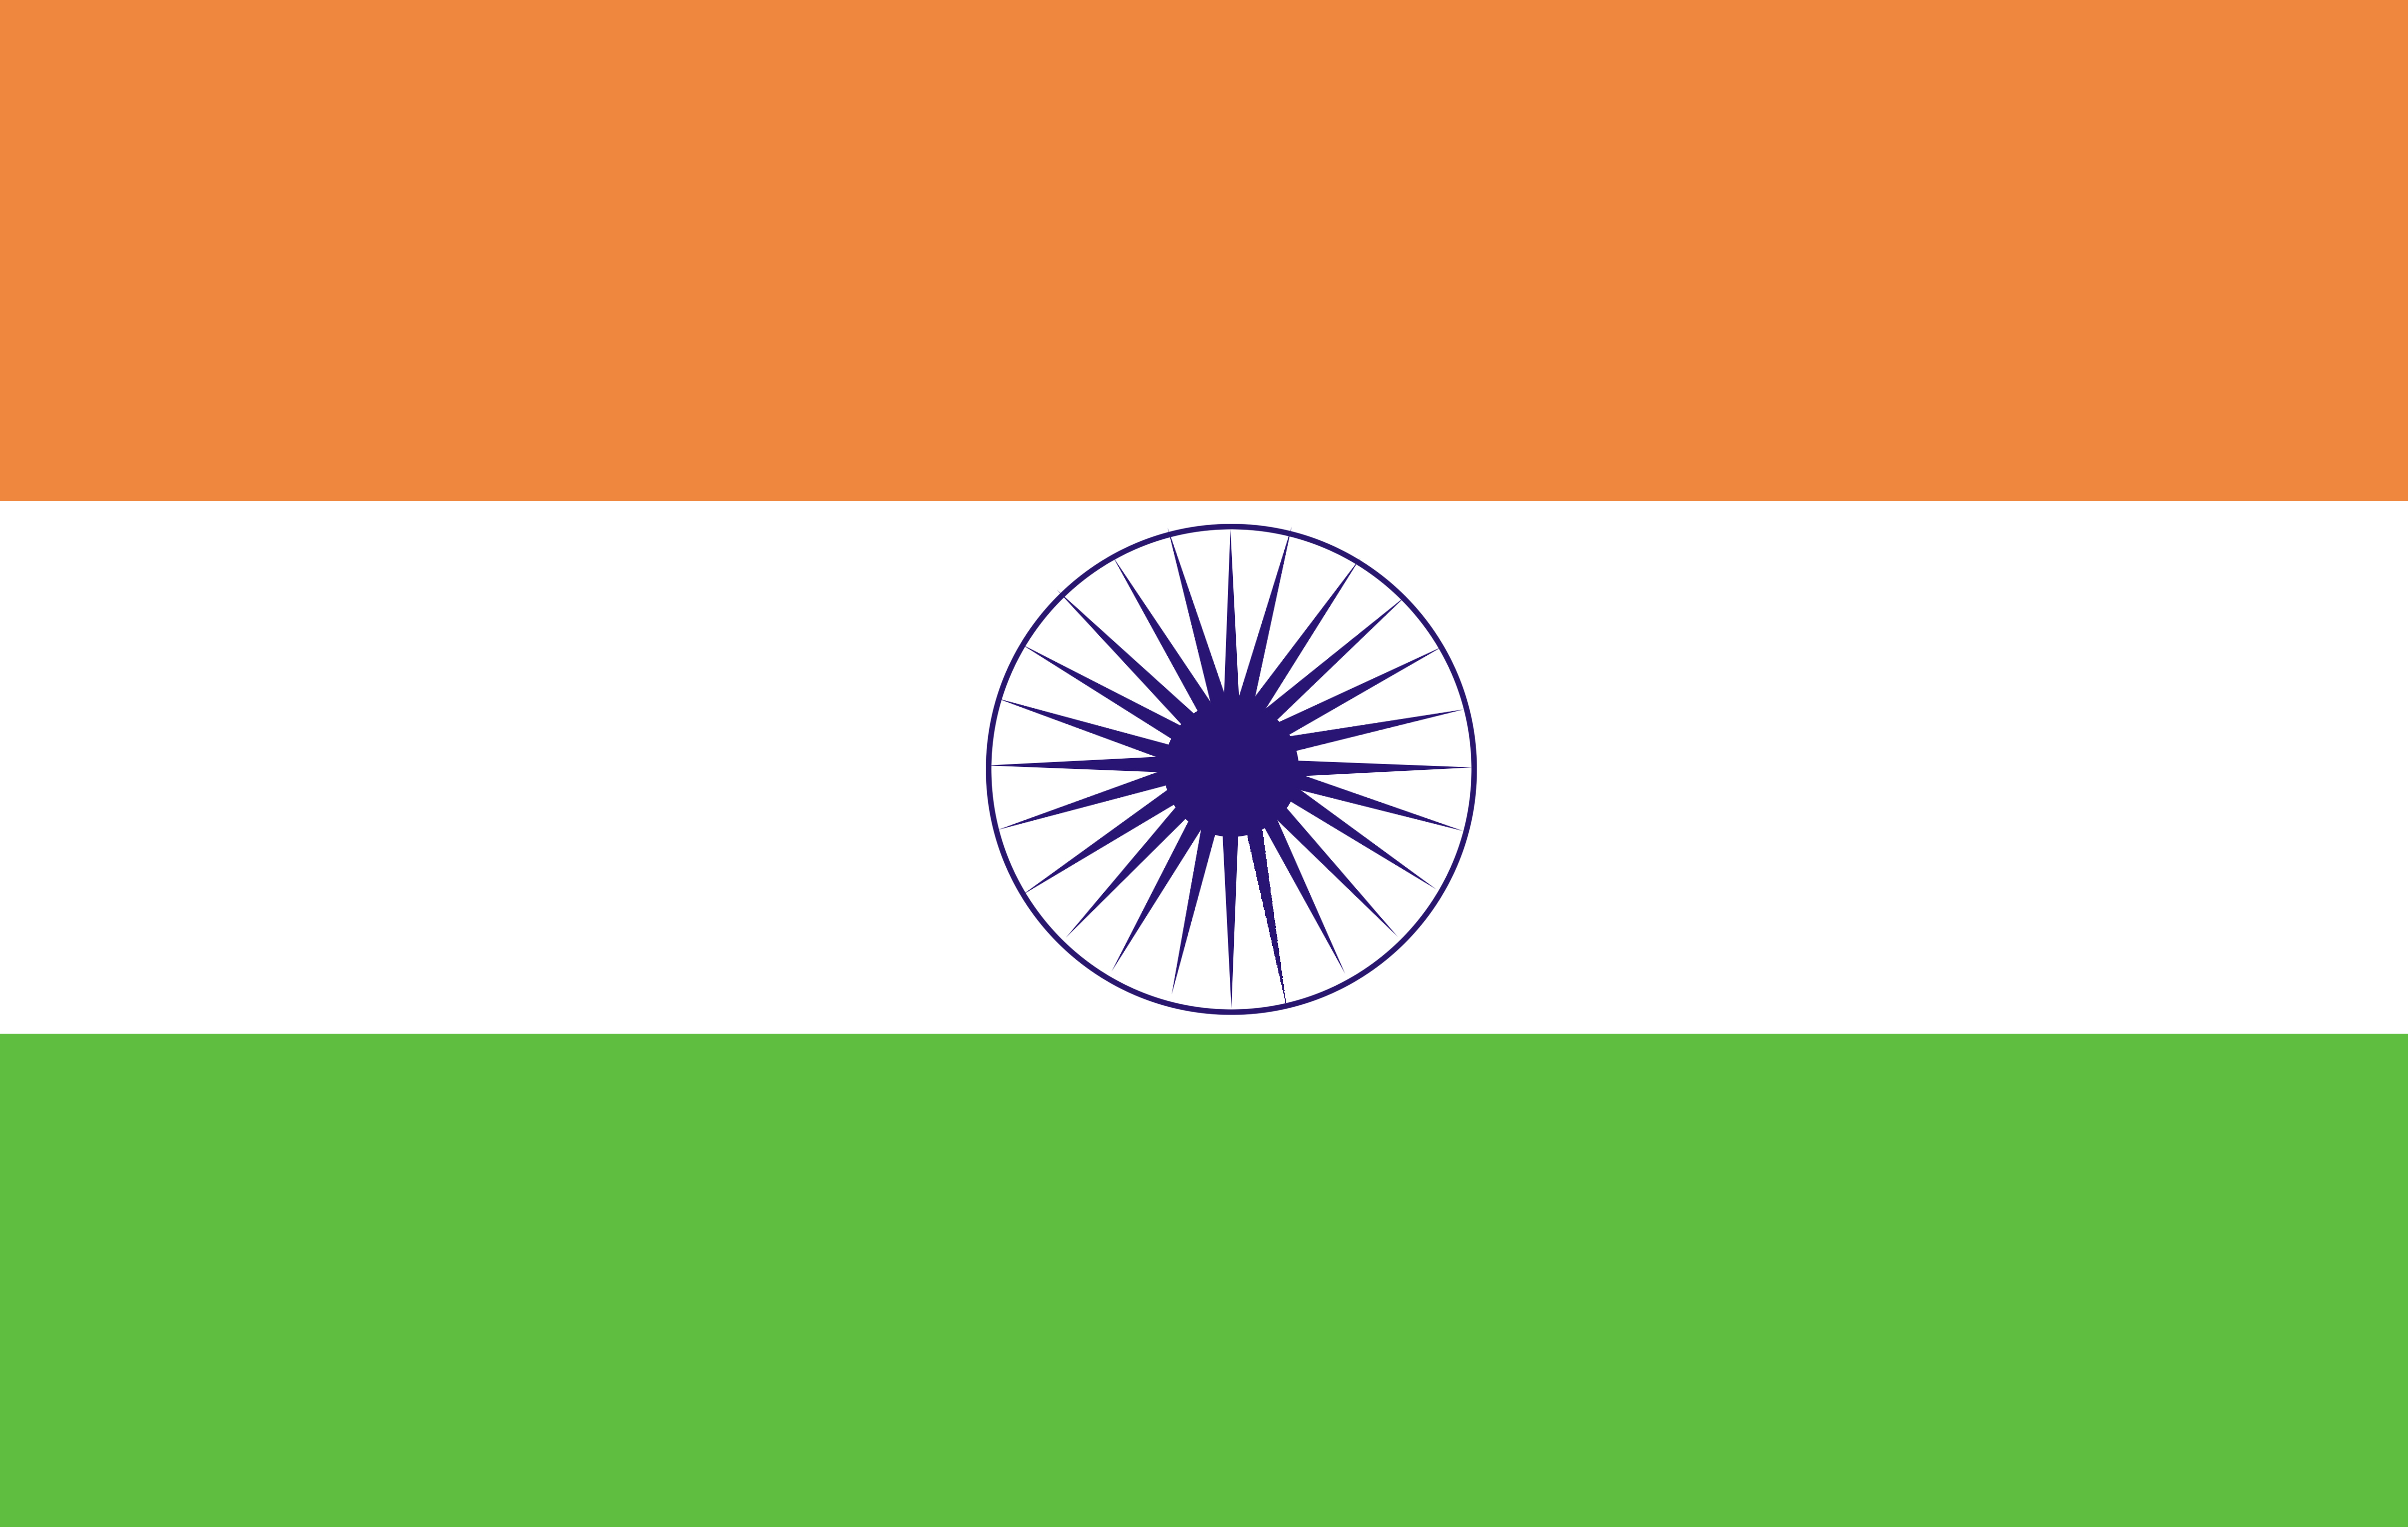 High Resolution Wallpaper | Flag Of India 4920x3120 px